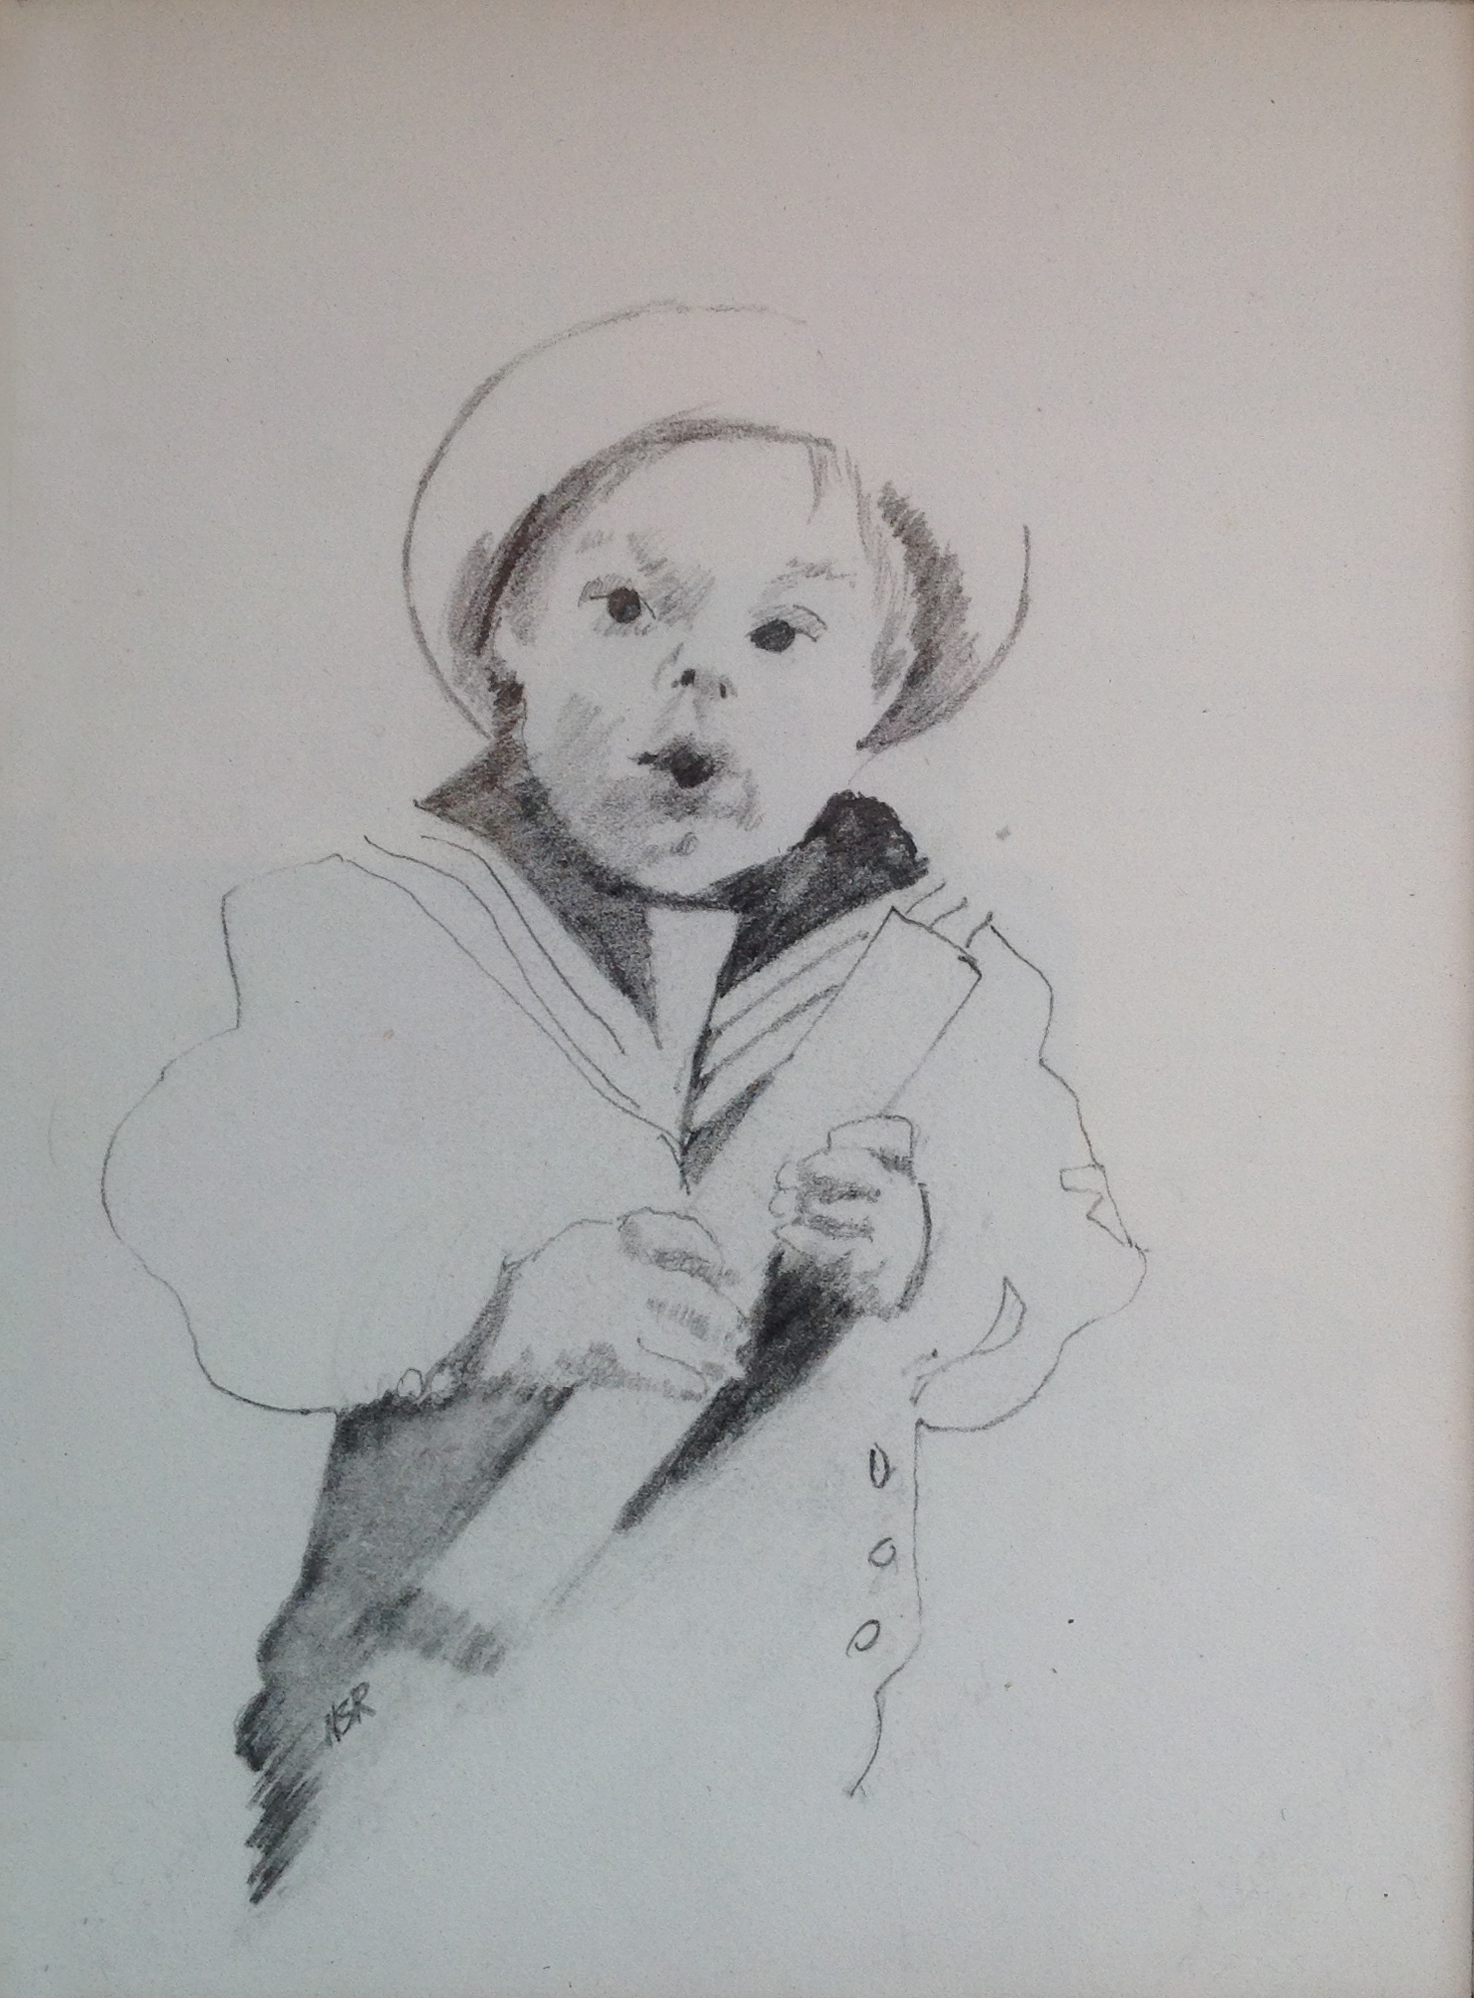 The Sailor Suit - 5 x 7 - Collection of Thomas and Mary Cook